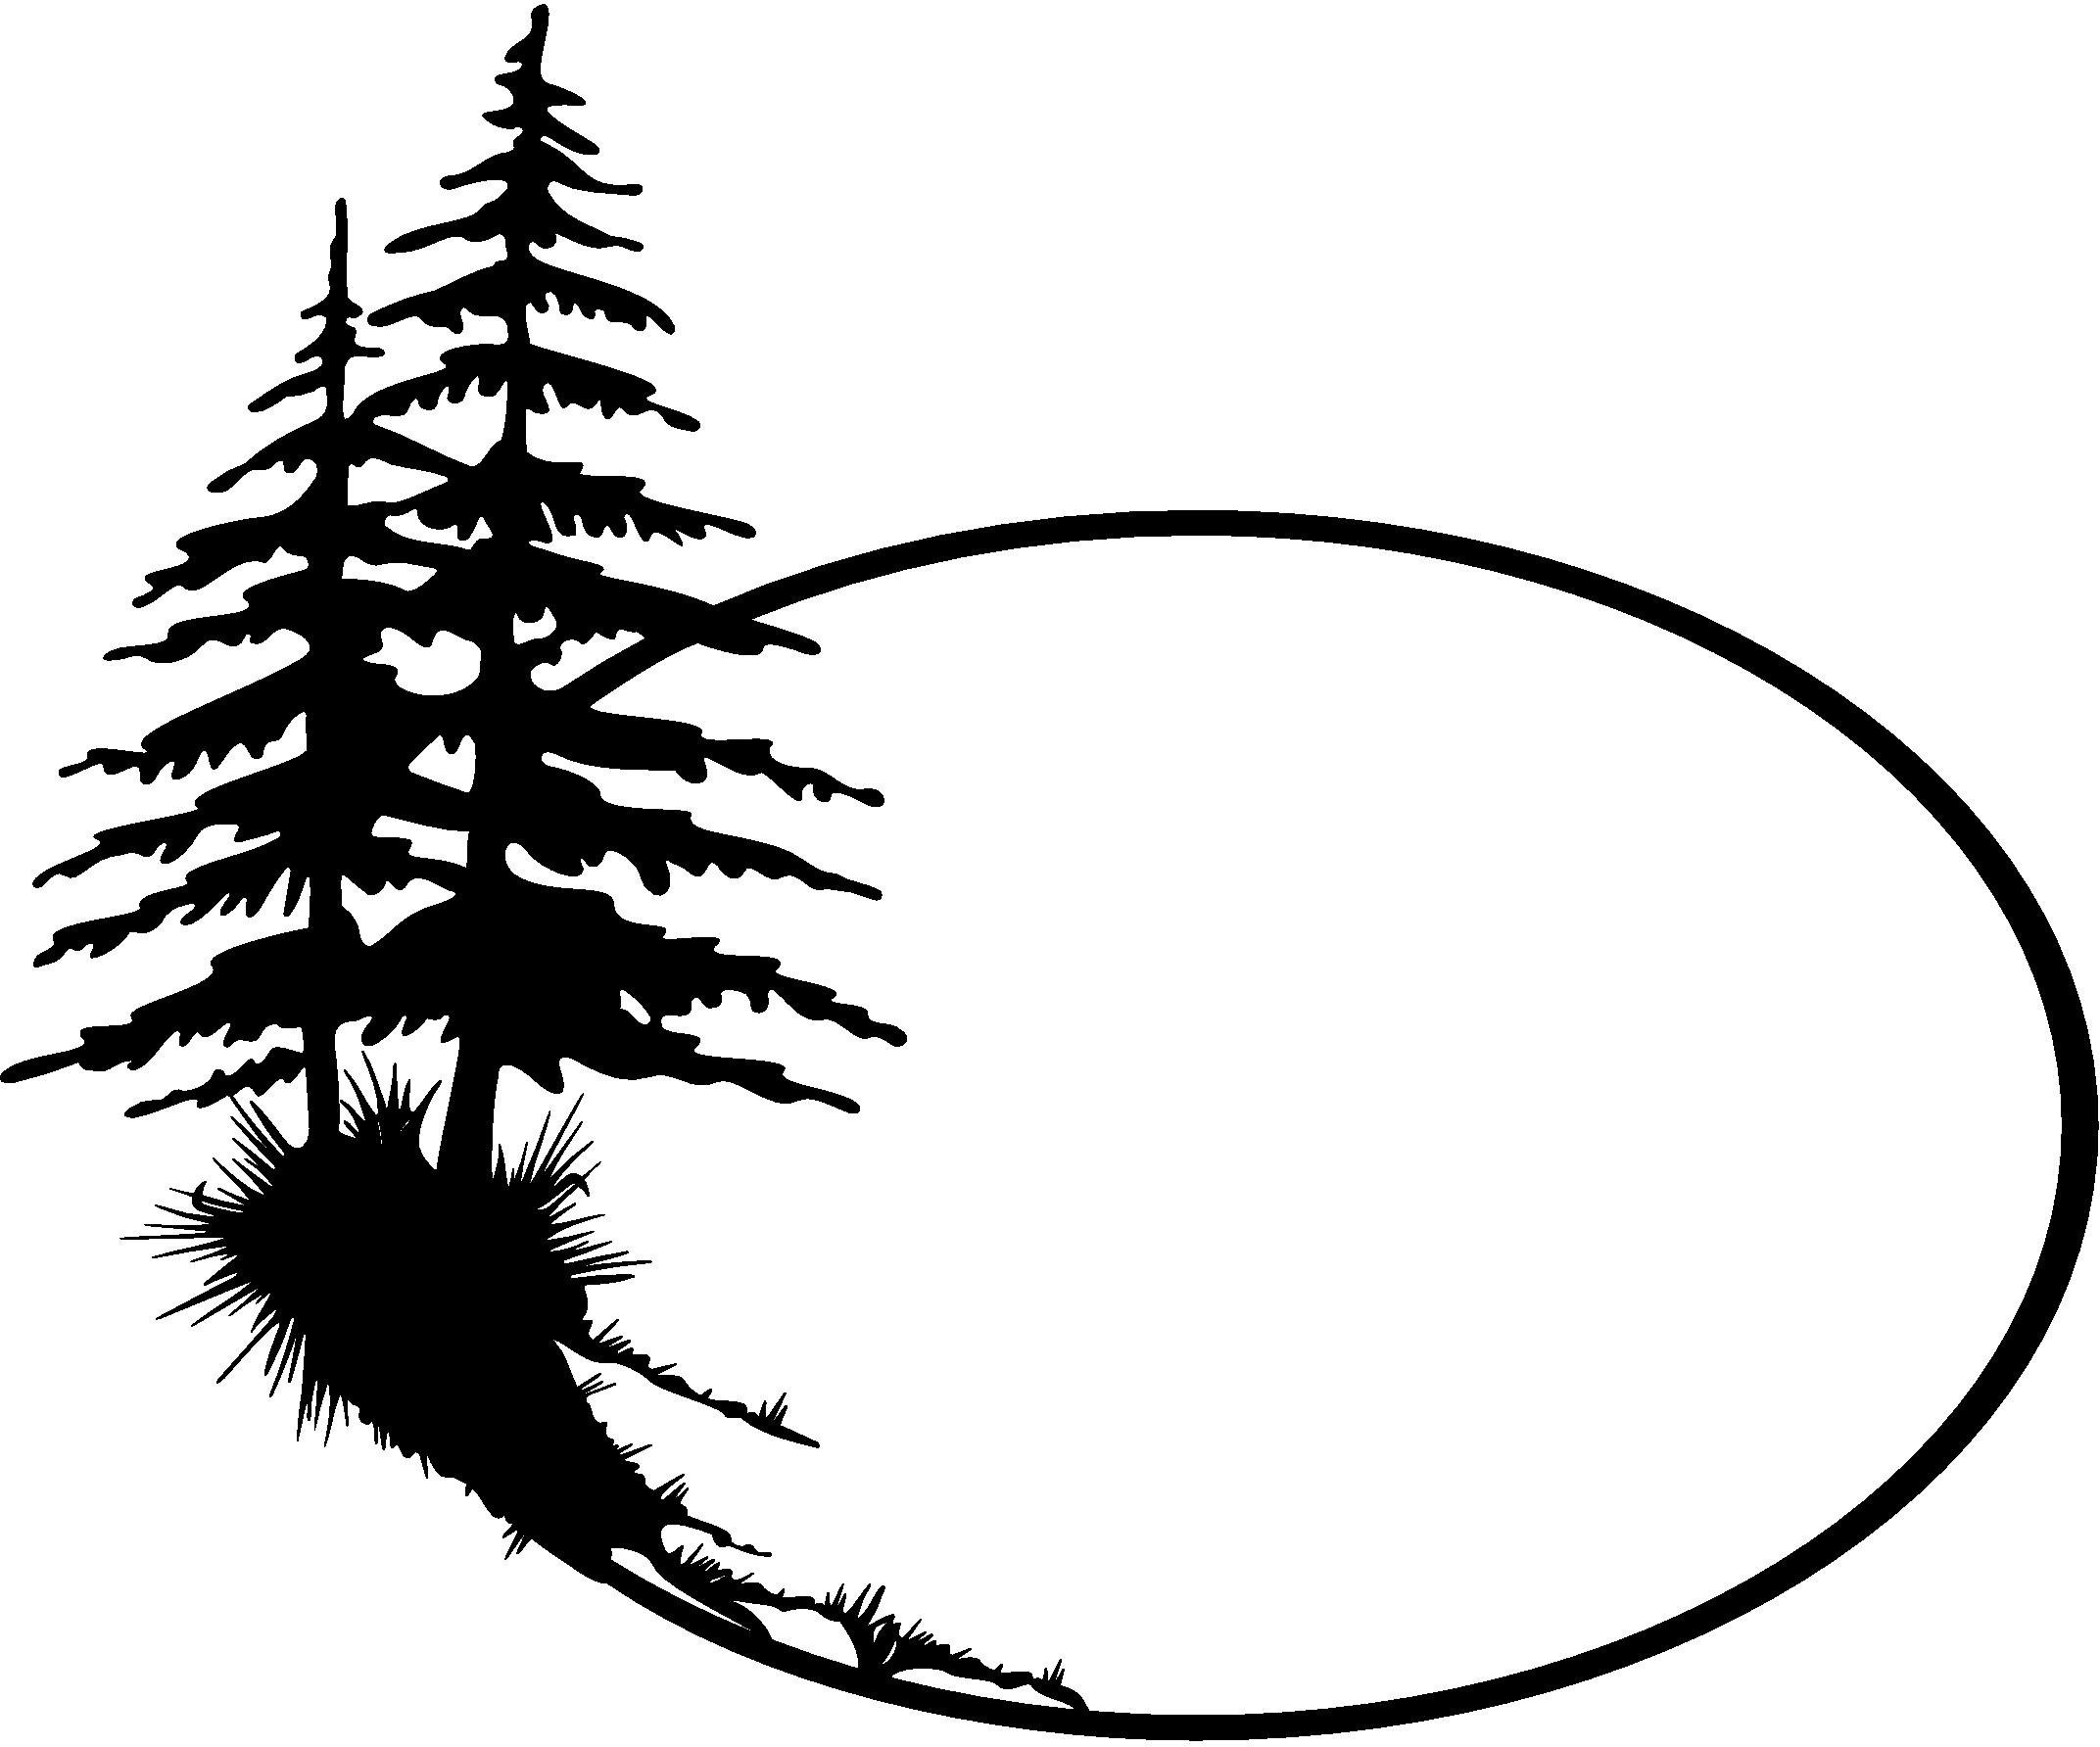 how to draw pine trees step by step pine trees in pencil drawing at getdrawings free download by trees pine how step step to draw